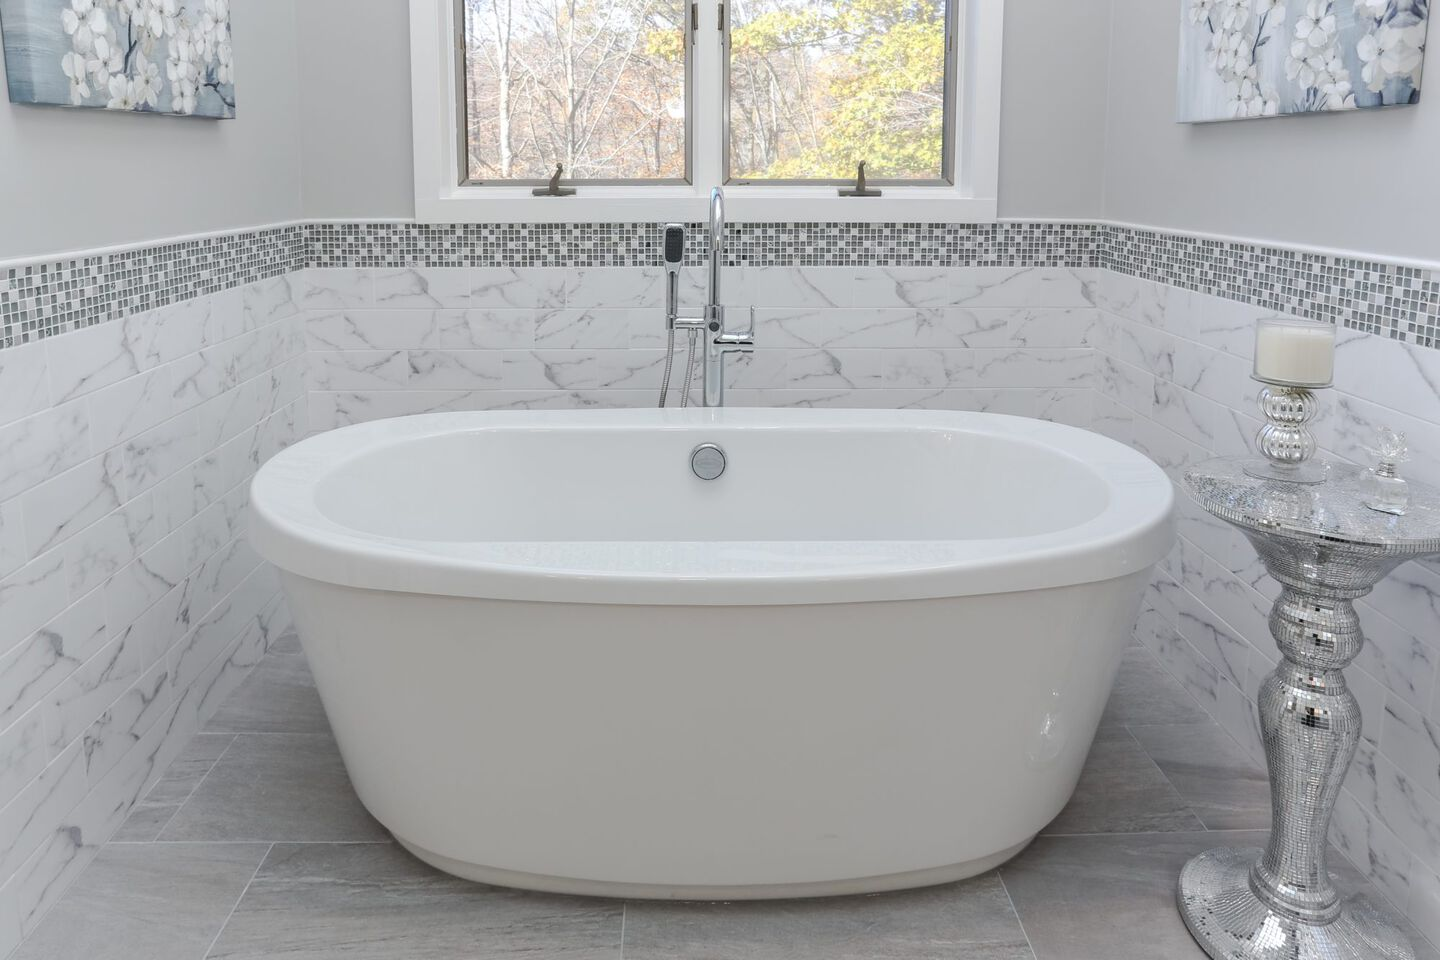 Bravo Freestanding Bath in White